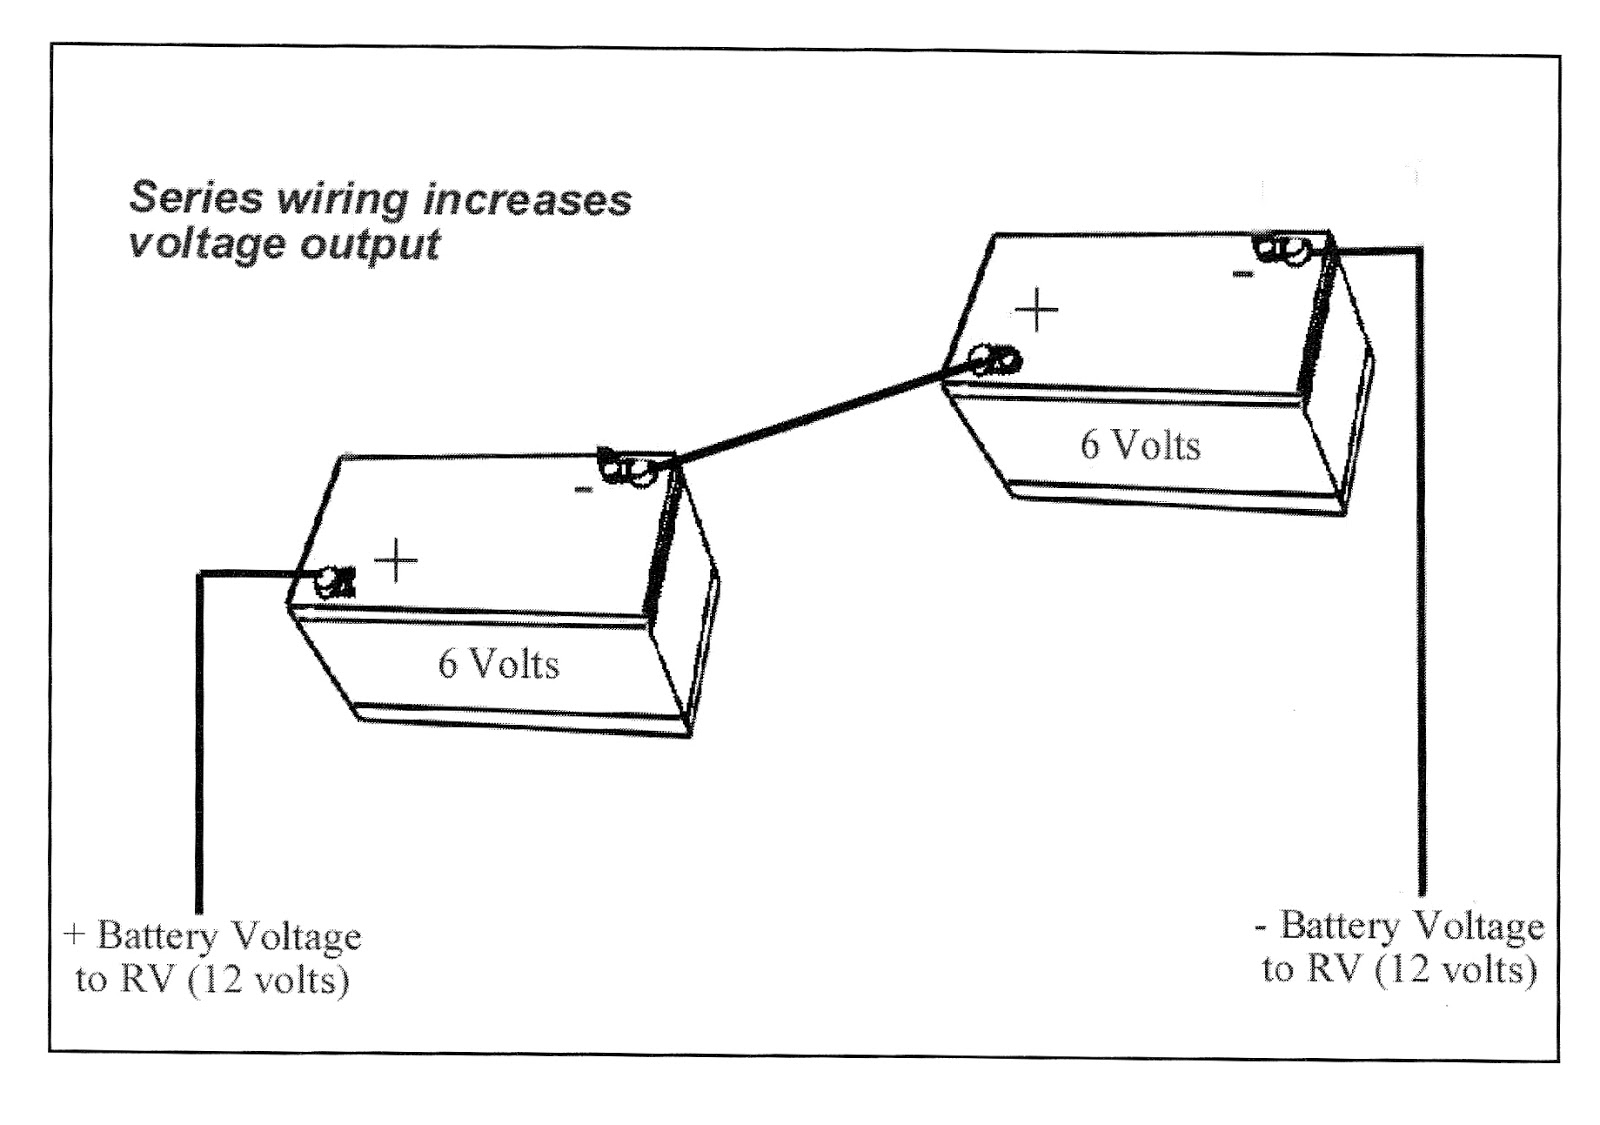 Simple Series Circuit Schematic Free Wiring Diagram For You House Drawing 12v Battery Library Basic Electrical Drawings